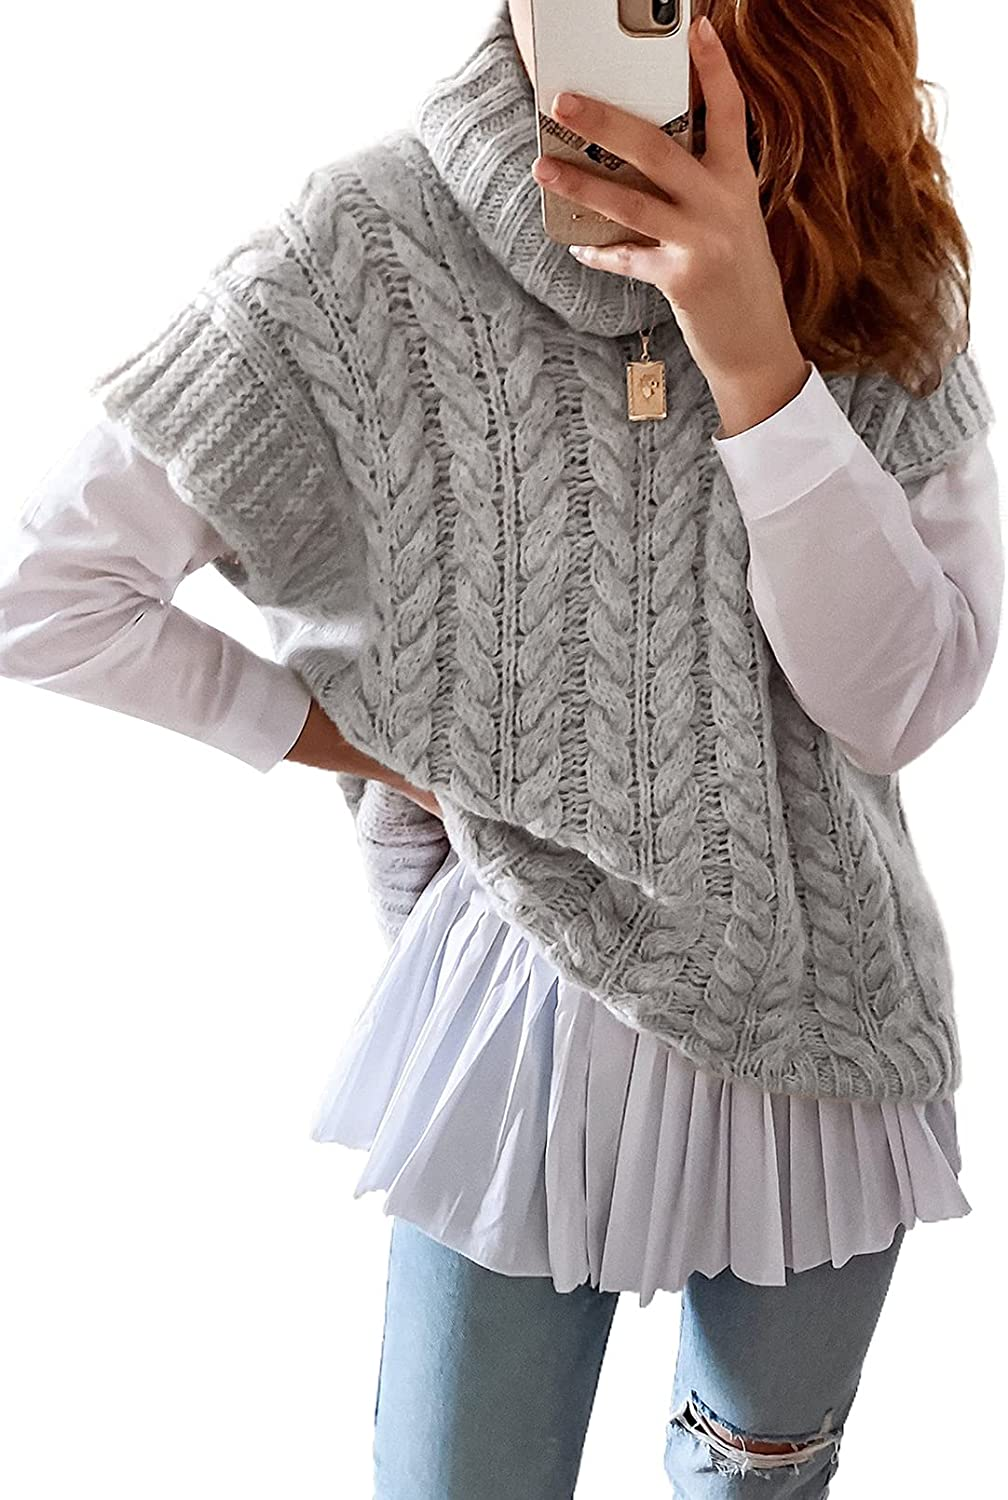 Astylish Womens Sweater Vest Knit Sleeveless Turtle Neck Pullover Tank Top